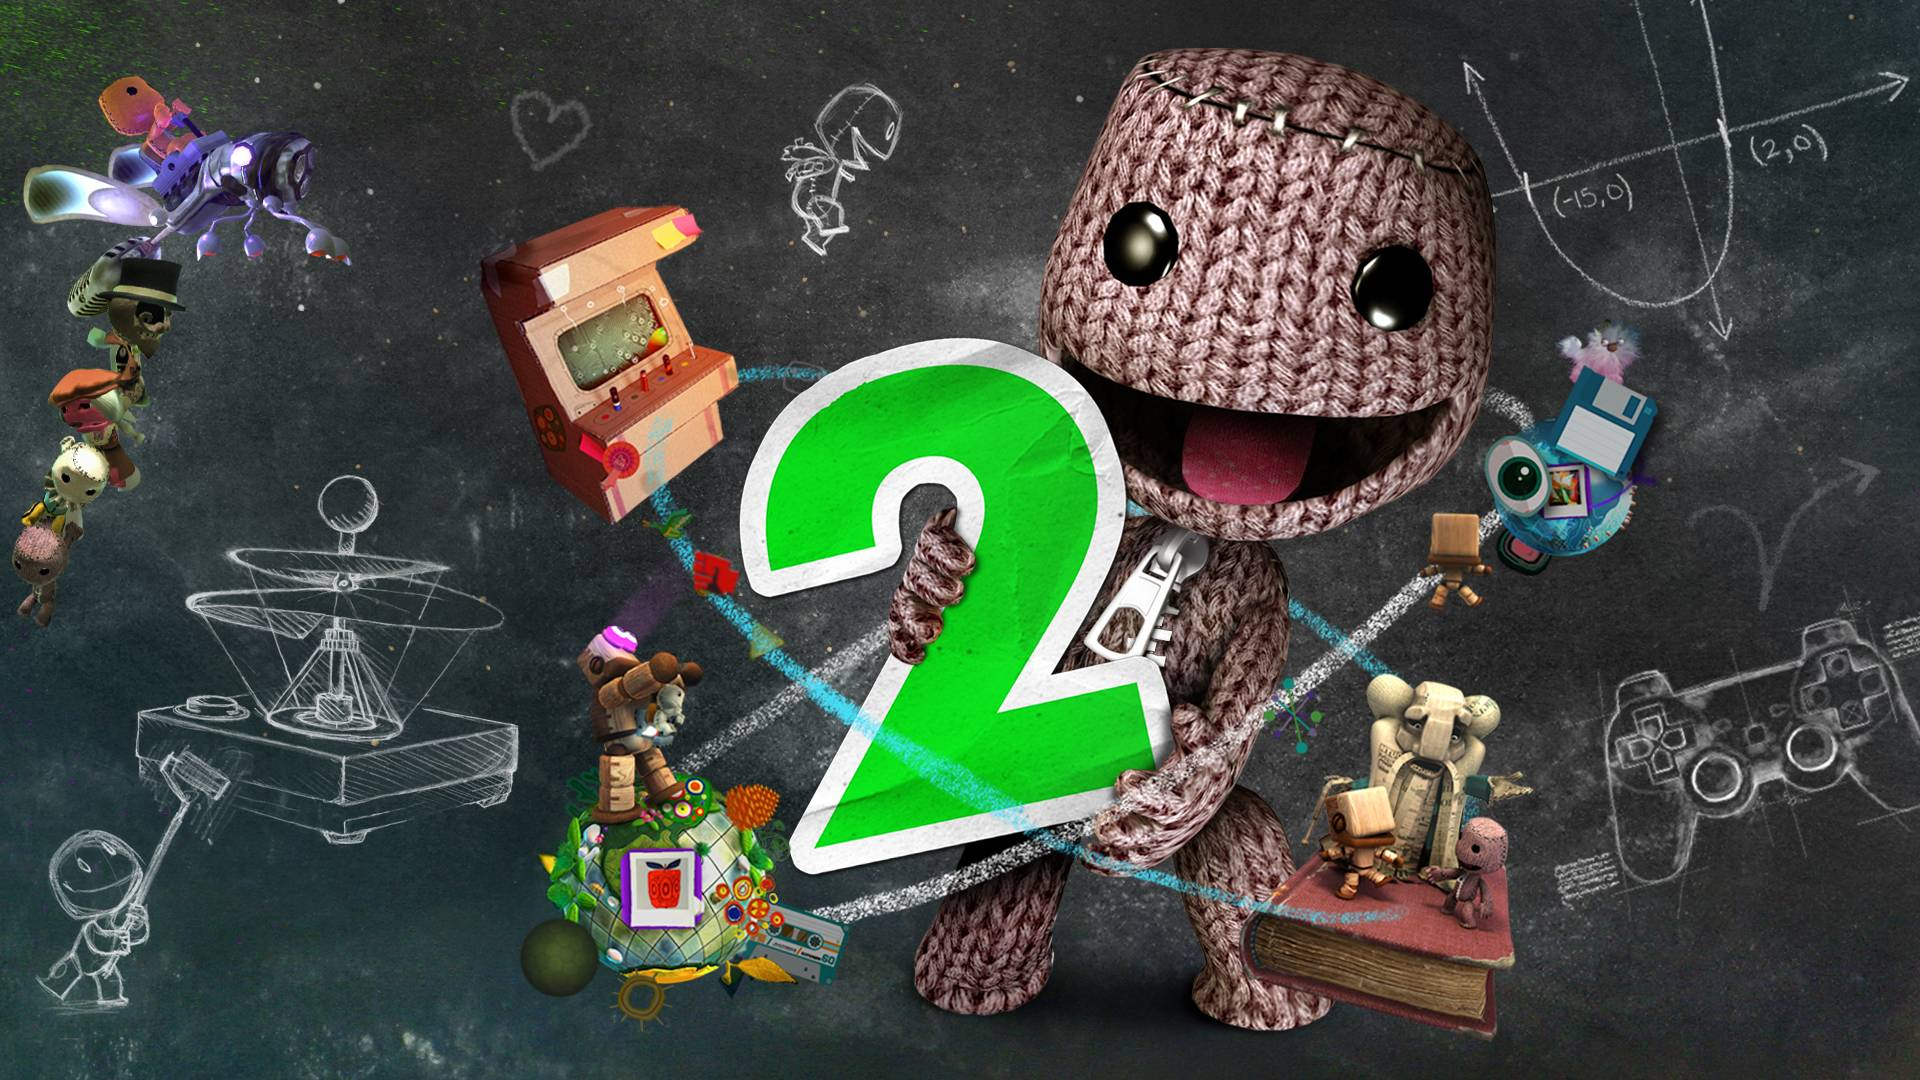 Littlebigplanet 2 Hd Computer Backgrounds